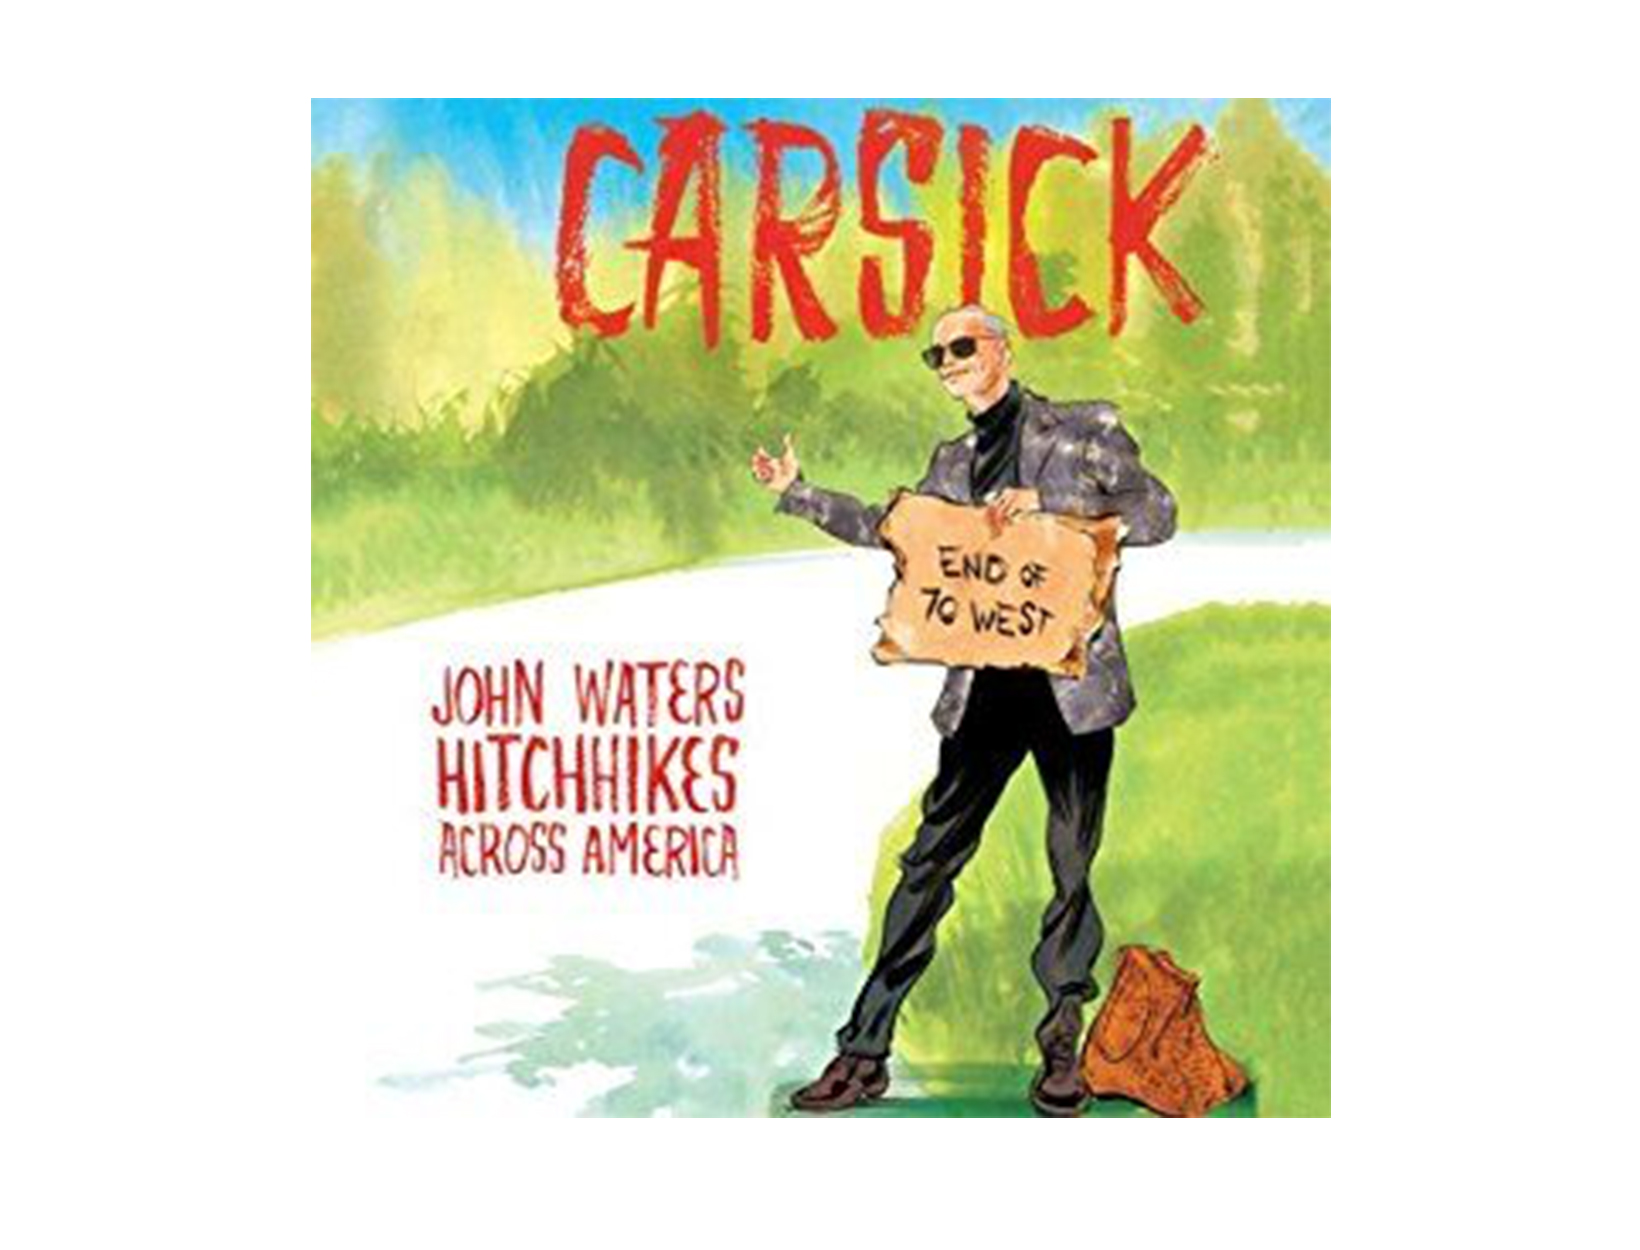 Carsick, written & read by John Waters